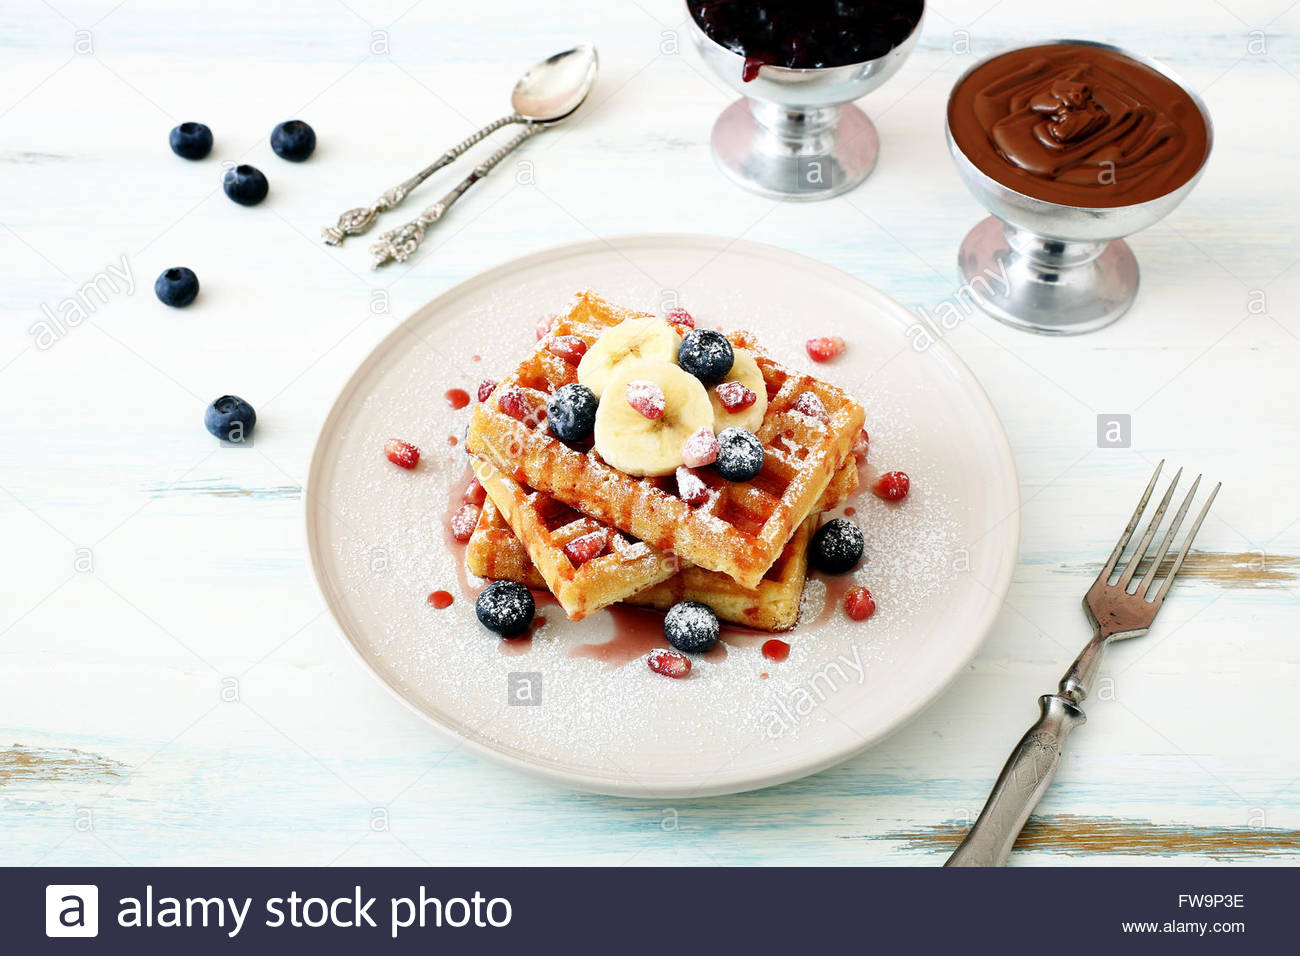 waffles with fresh berries and banana on kitchen table background - Stock Image